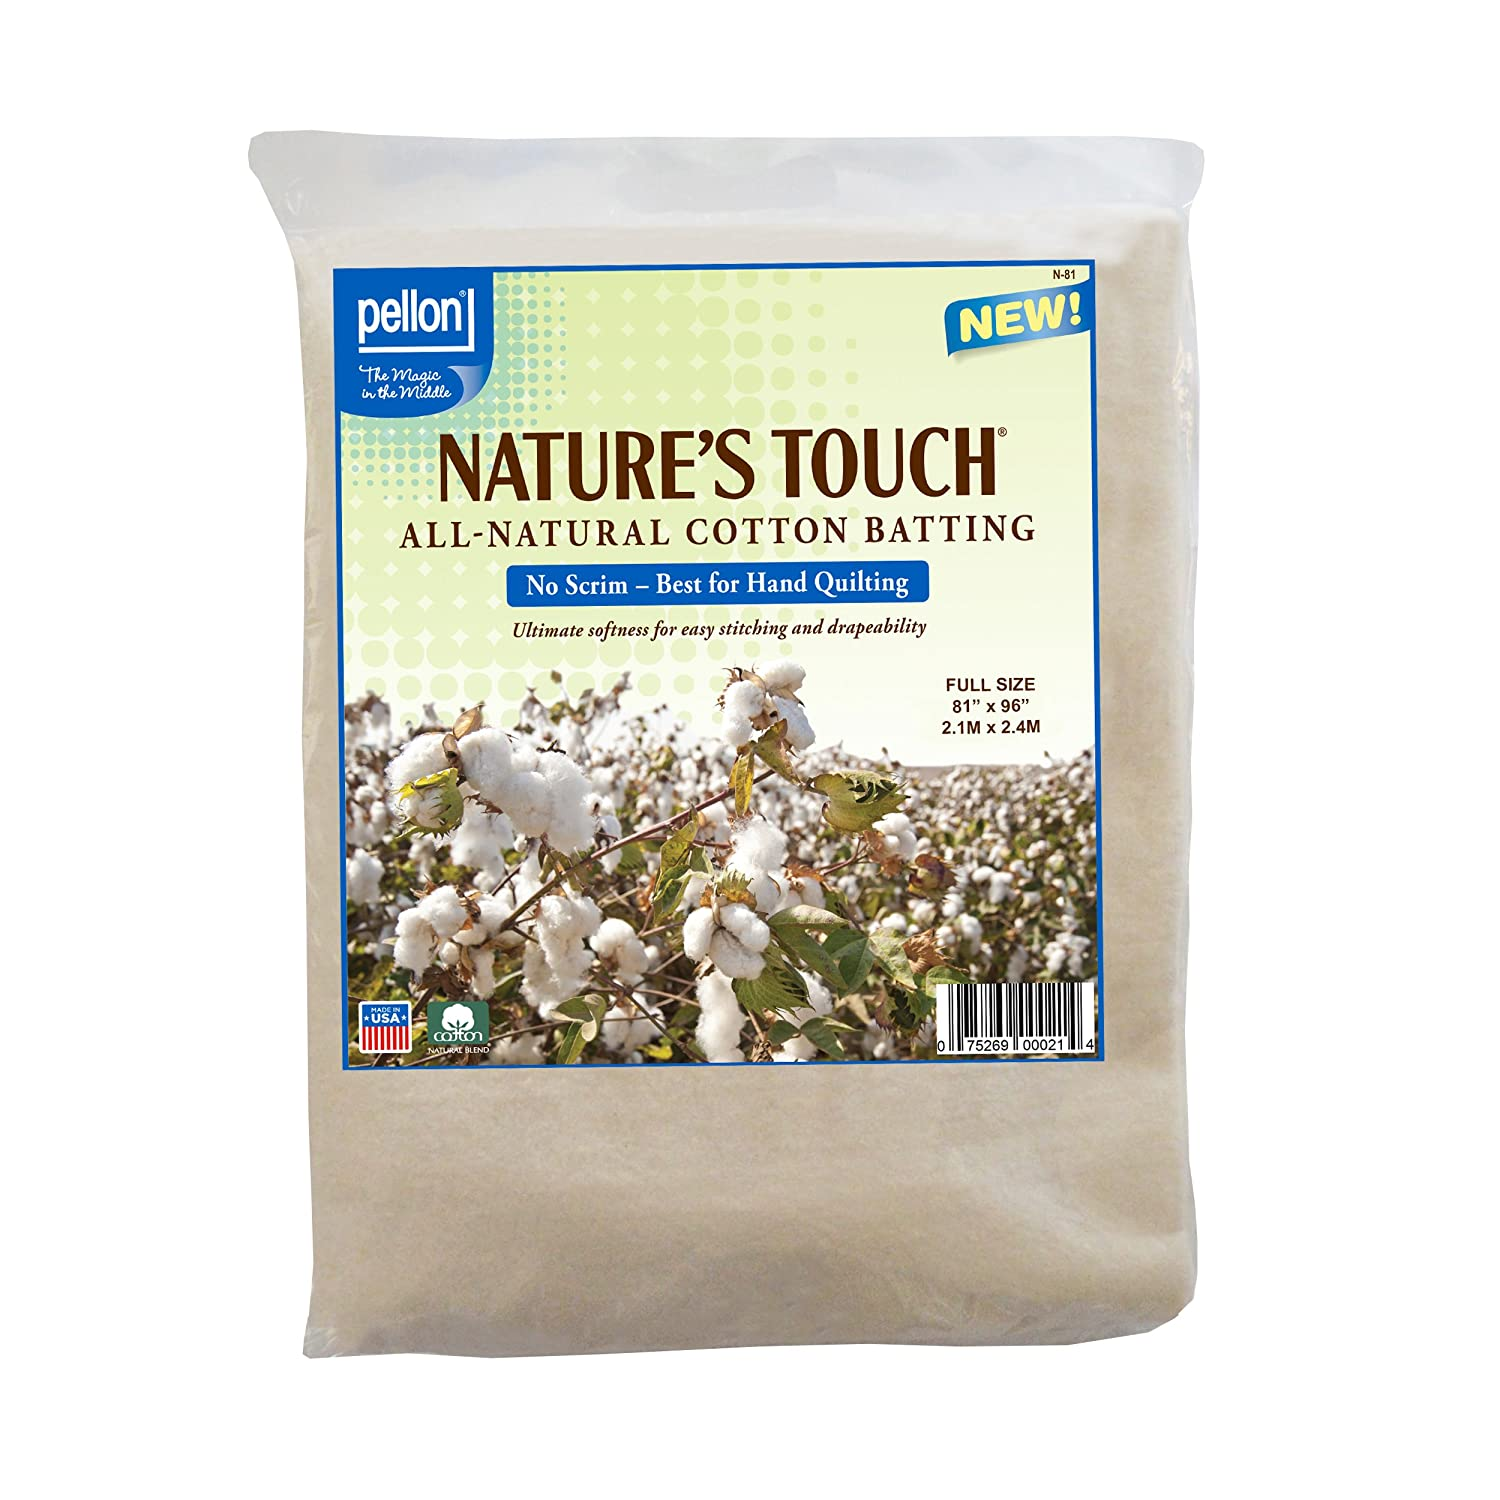 Pellon N-81 Nature's Touch 100% Natural Cotton Batting, No Scrim - Full 81 X 96